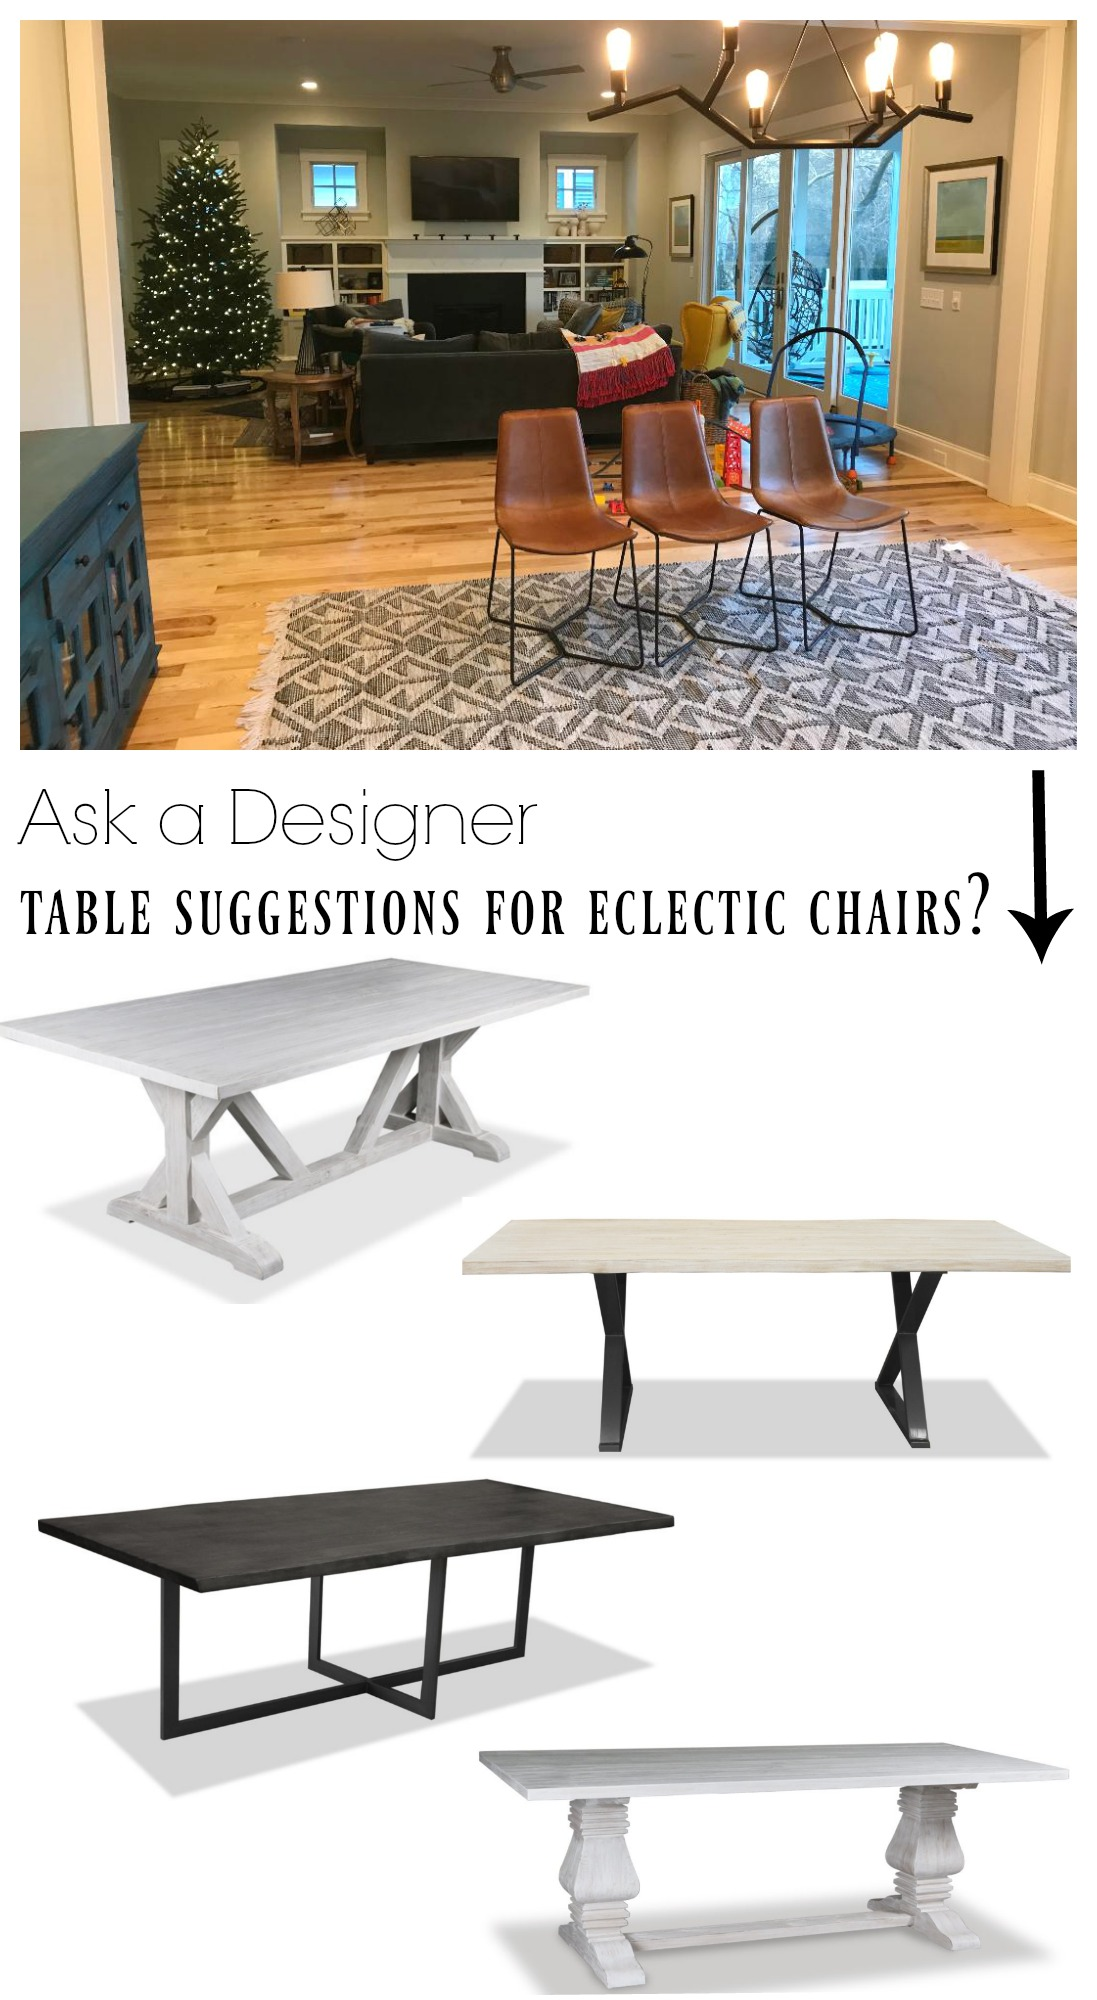 Ask a Designer- Table Suggestions for Eclectic Chairs?